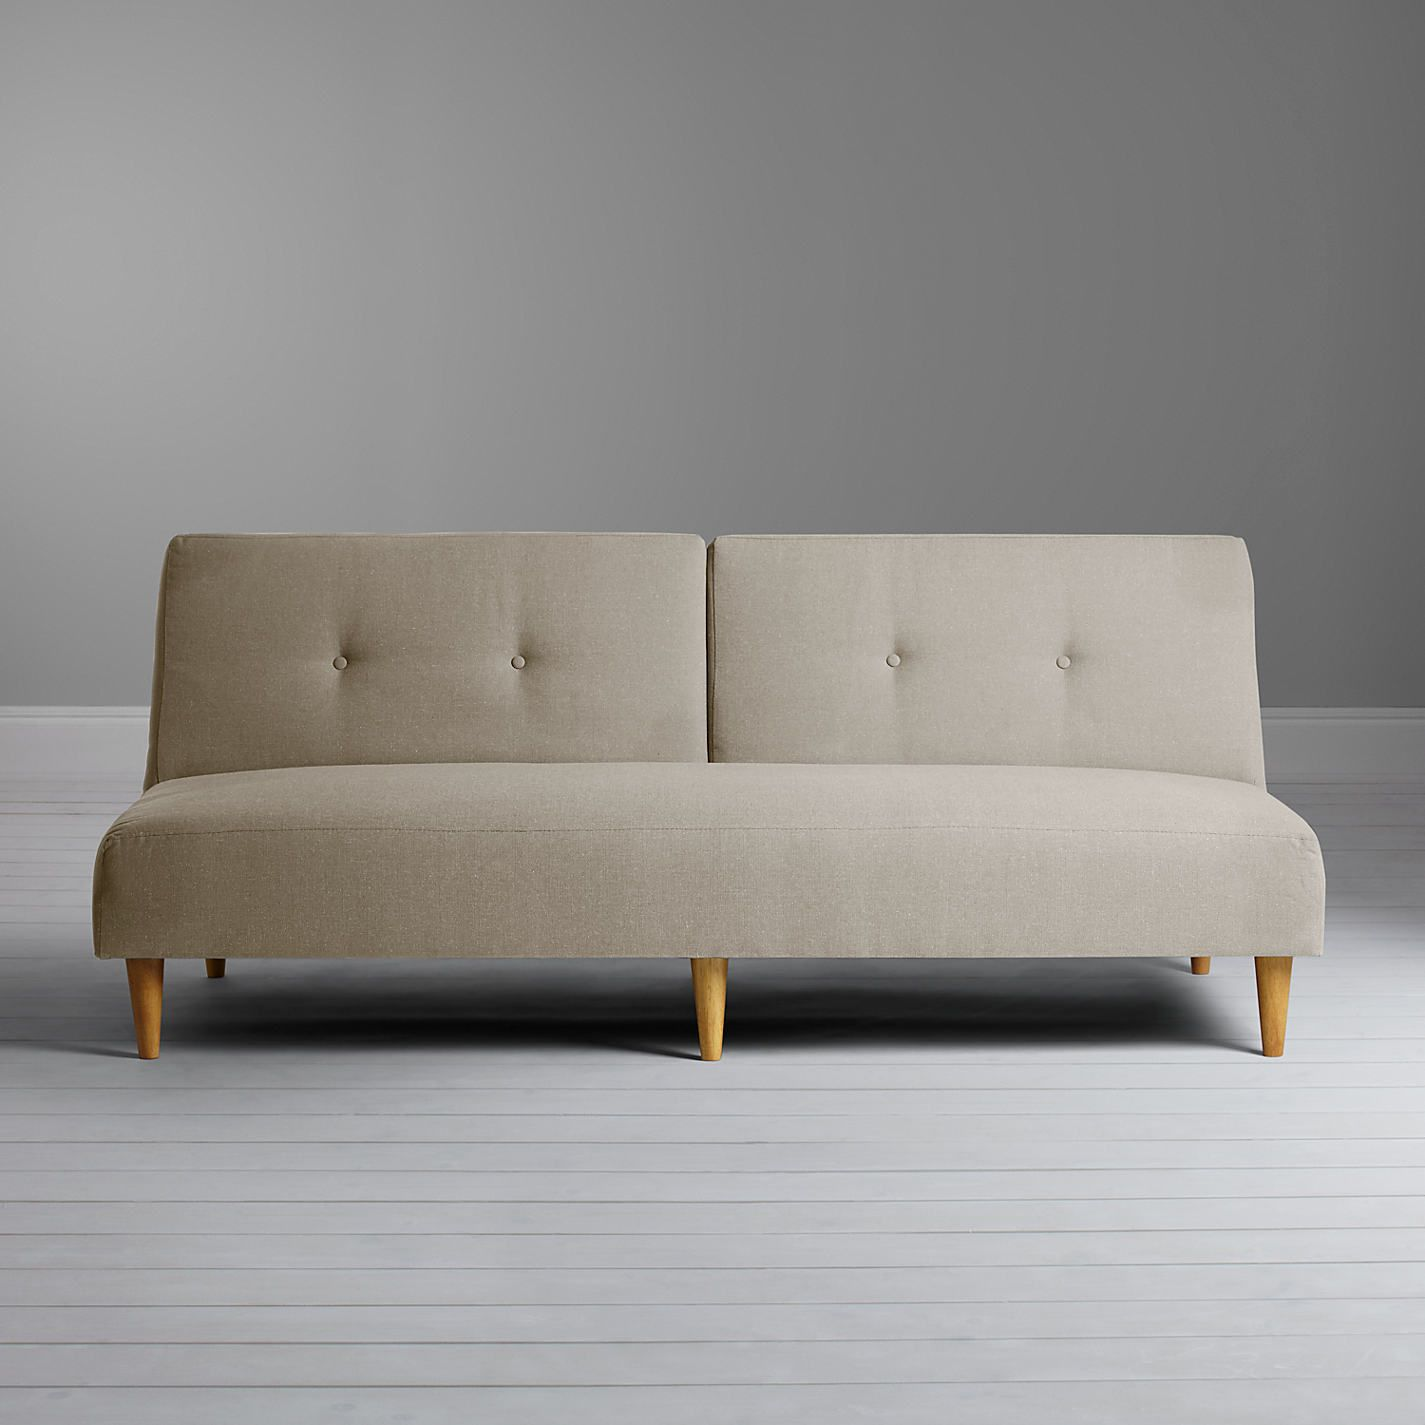 cool Sofa Bed Clearance Awesome Sofa Bed Clearance 45 Sofa